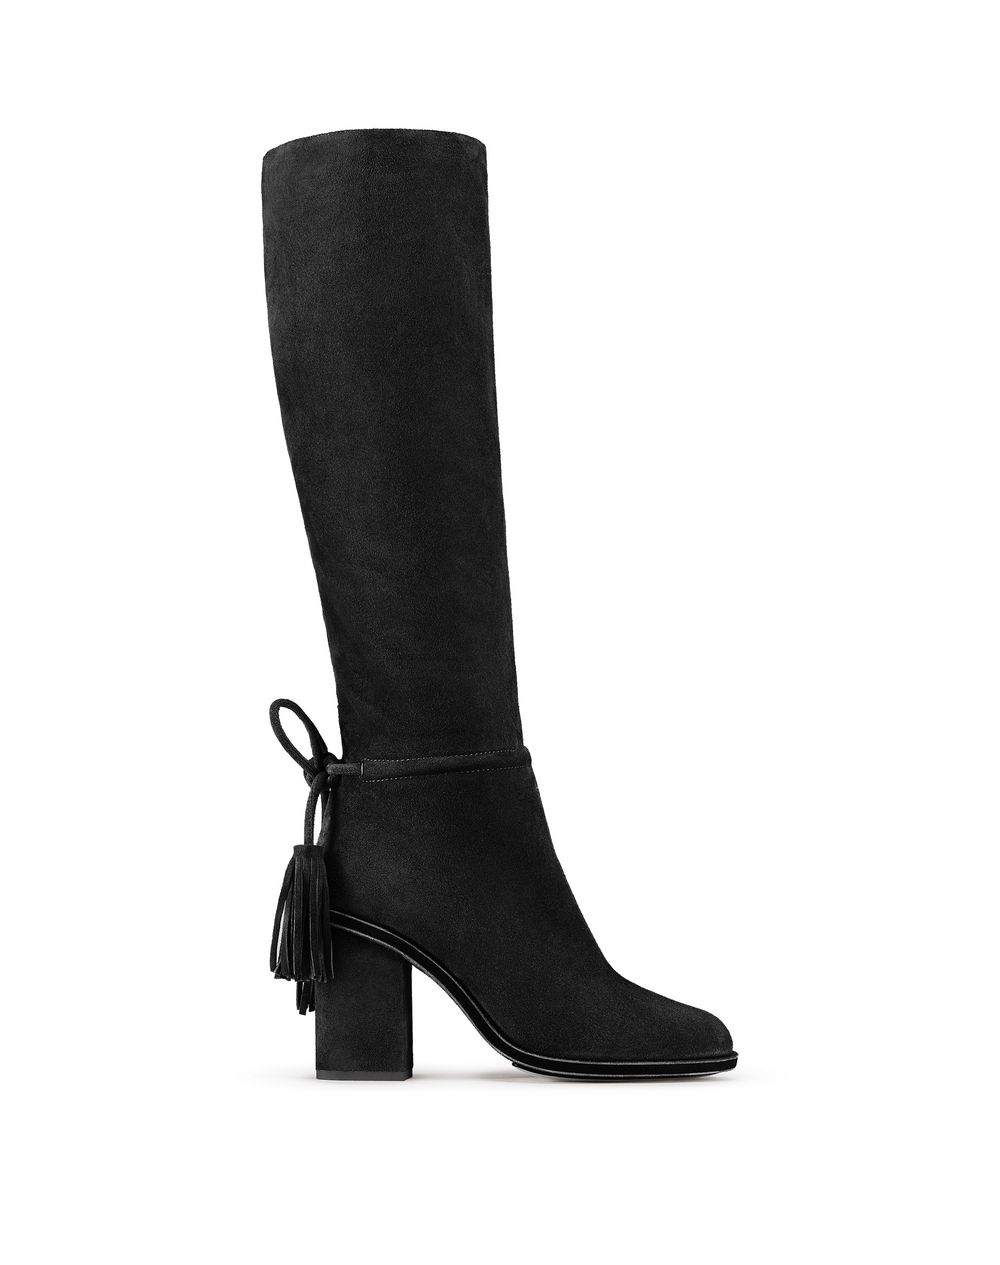 BLACK TASSEL BOOT - Lanvin